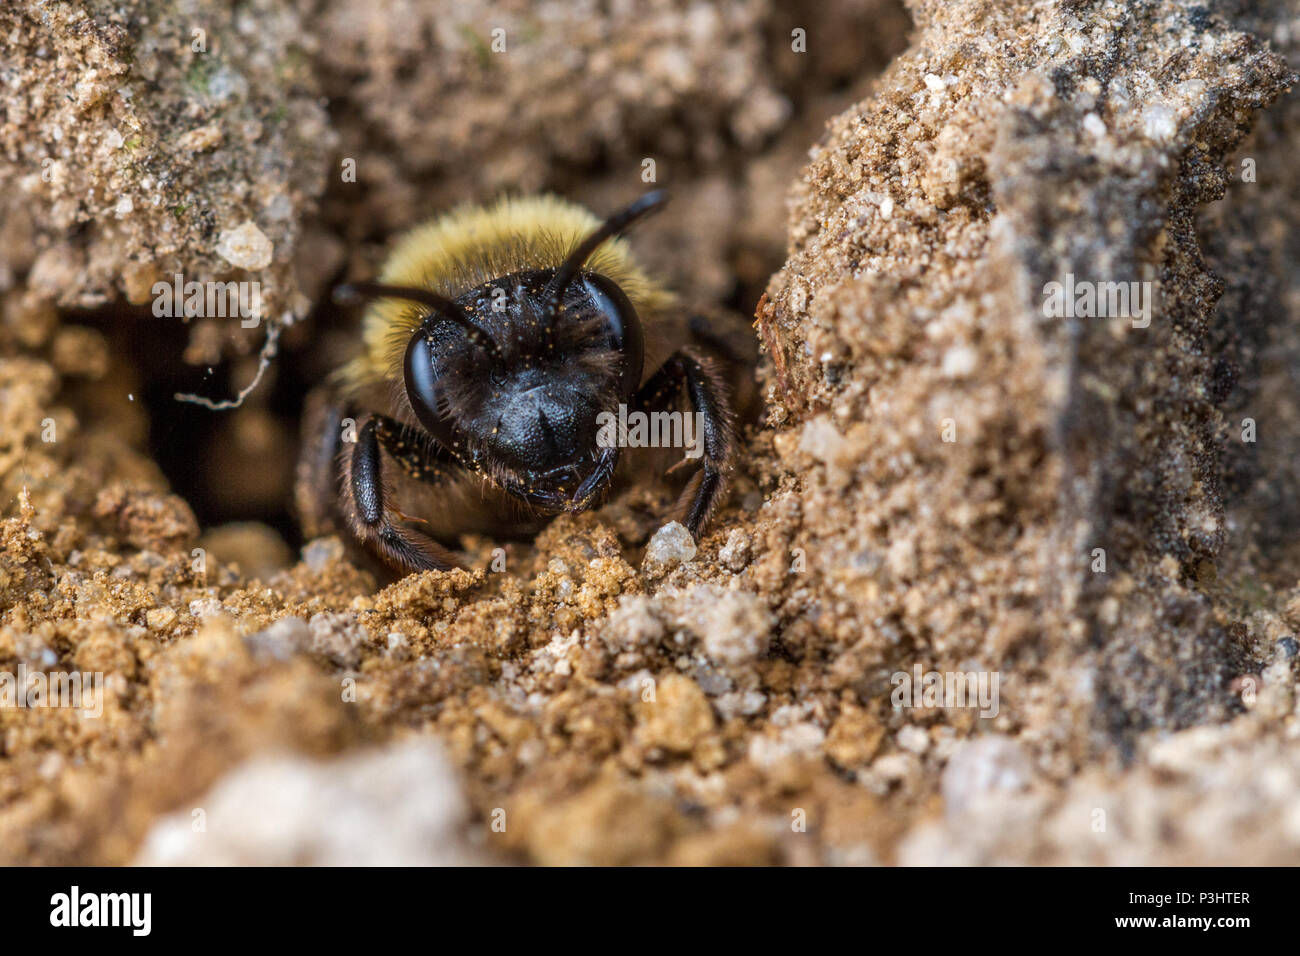 UK wildlife: chocolate mining bee (Andrena scotica) at the entrance to a sandy tunnel nest - Stock Image